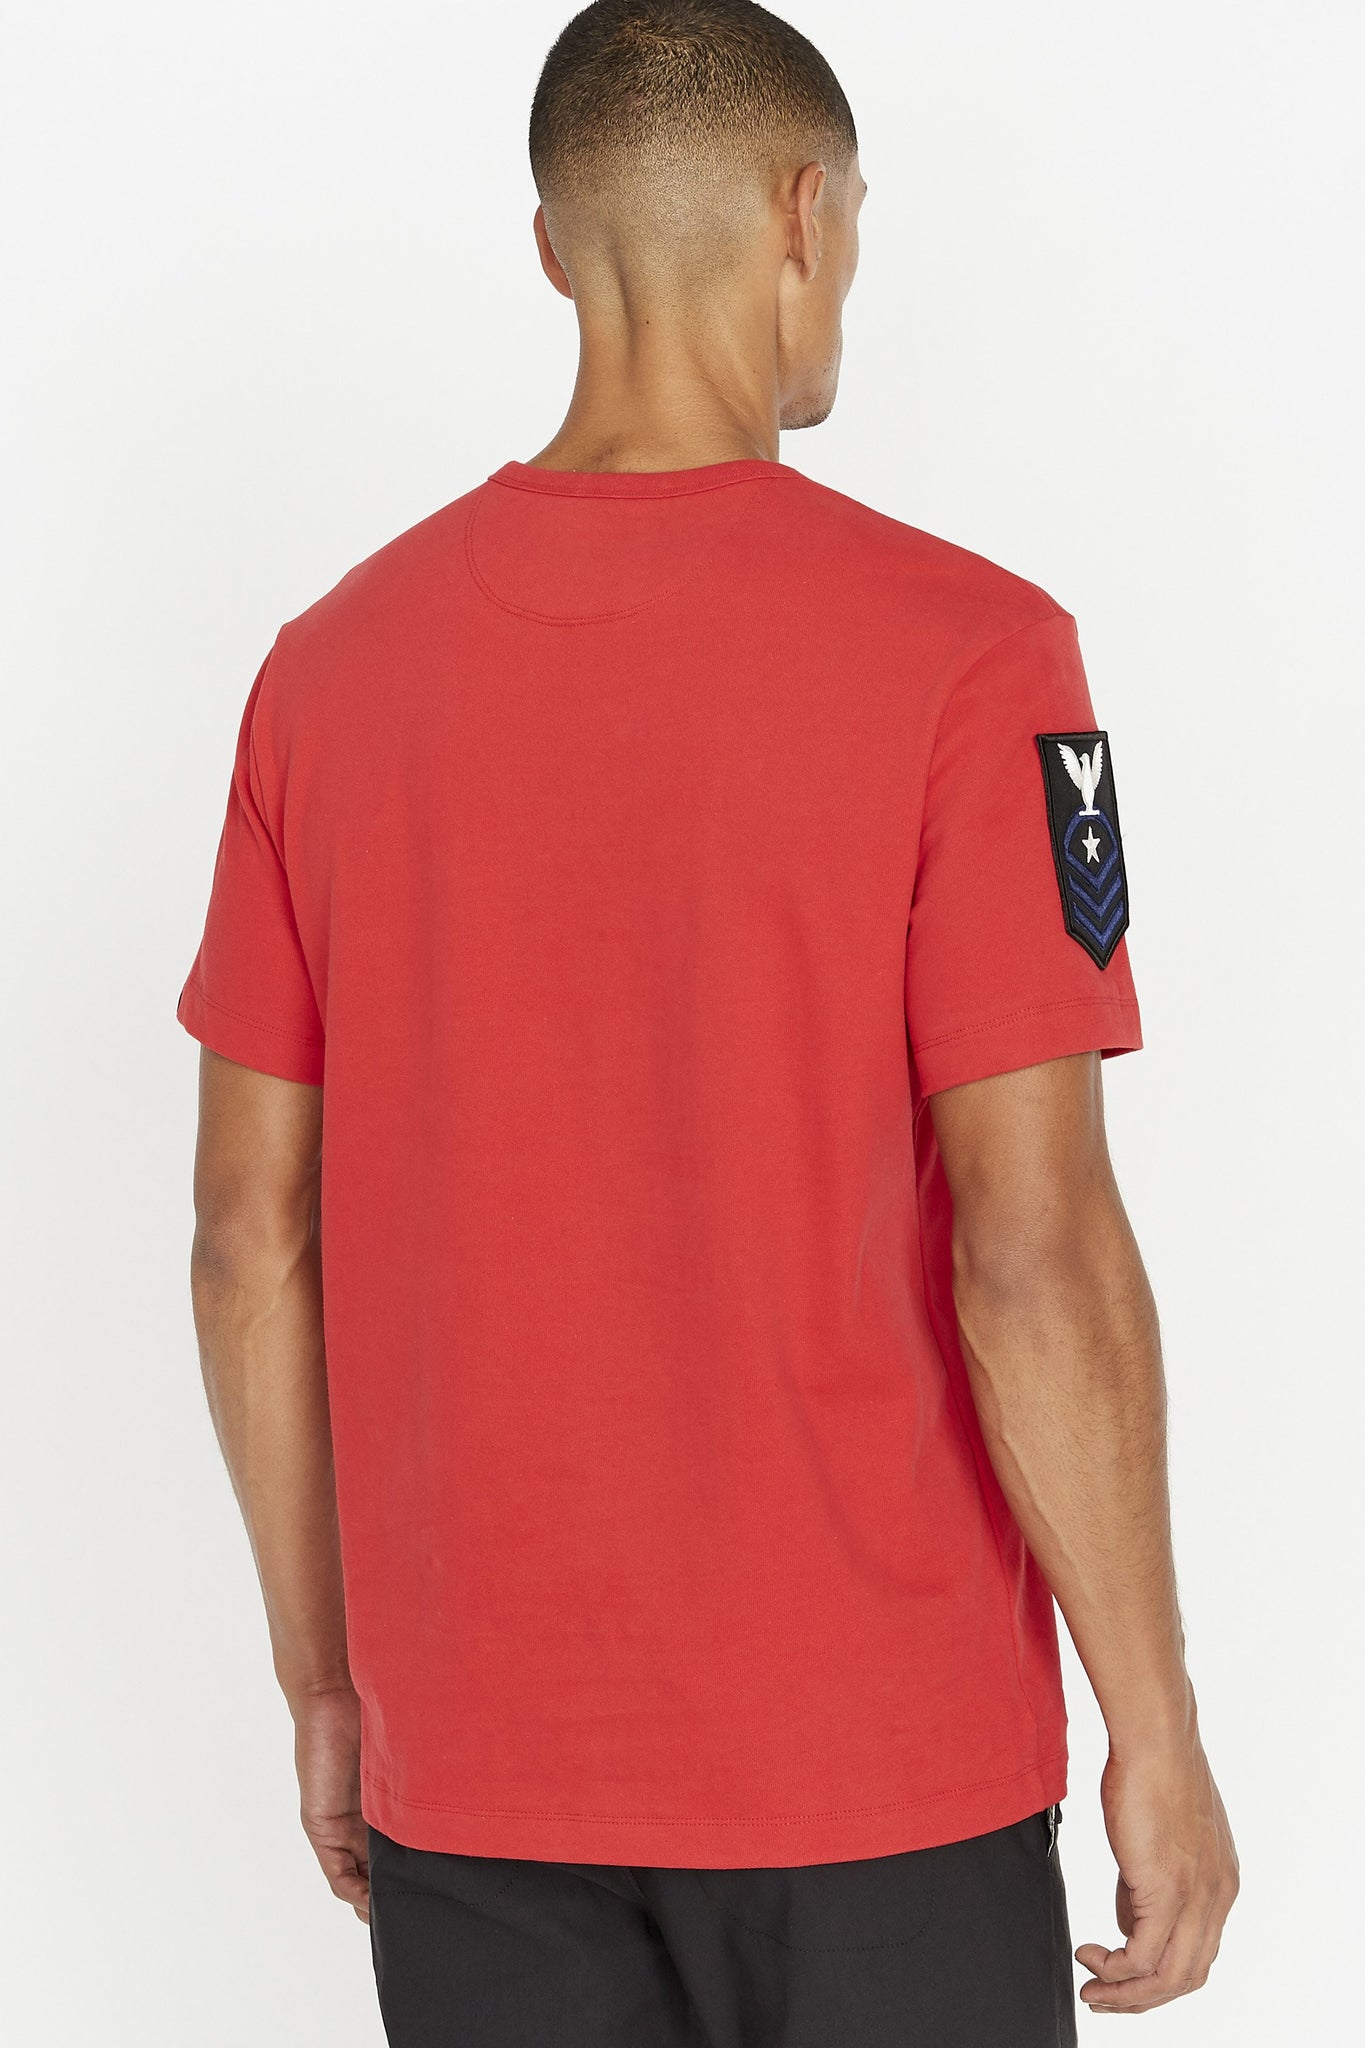 Back view of men wearing a red short sleeve crew T-shirt with contrast patch on right sleeve